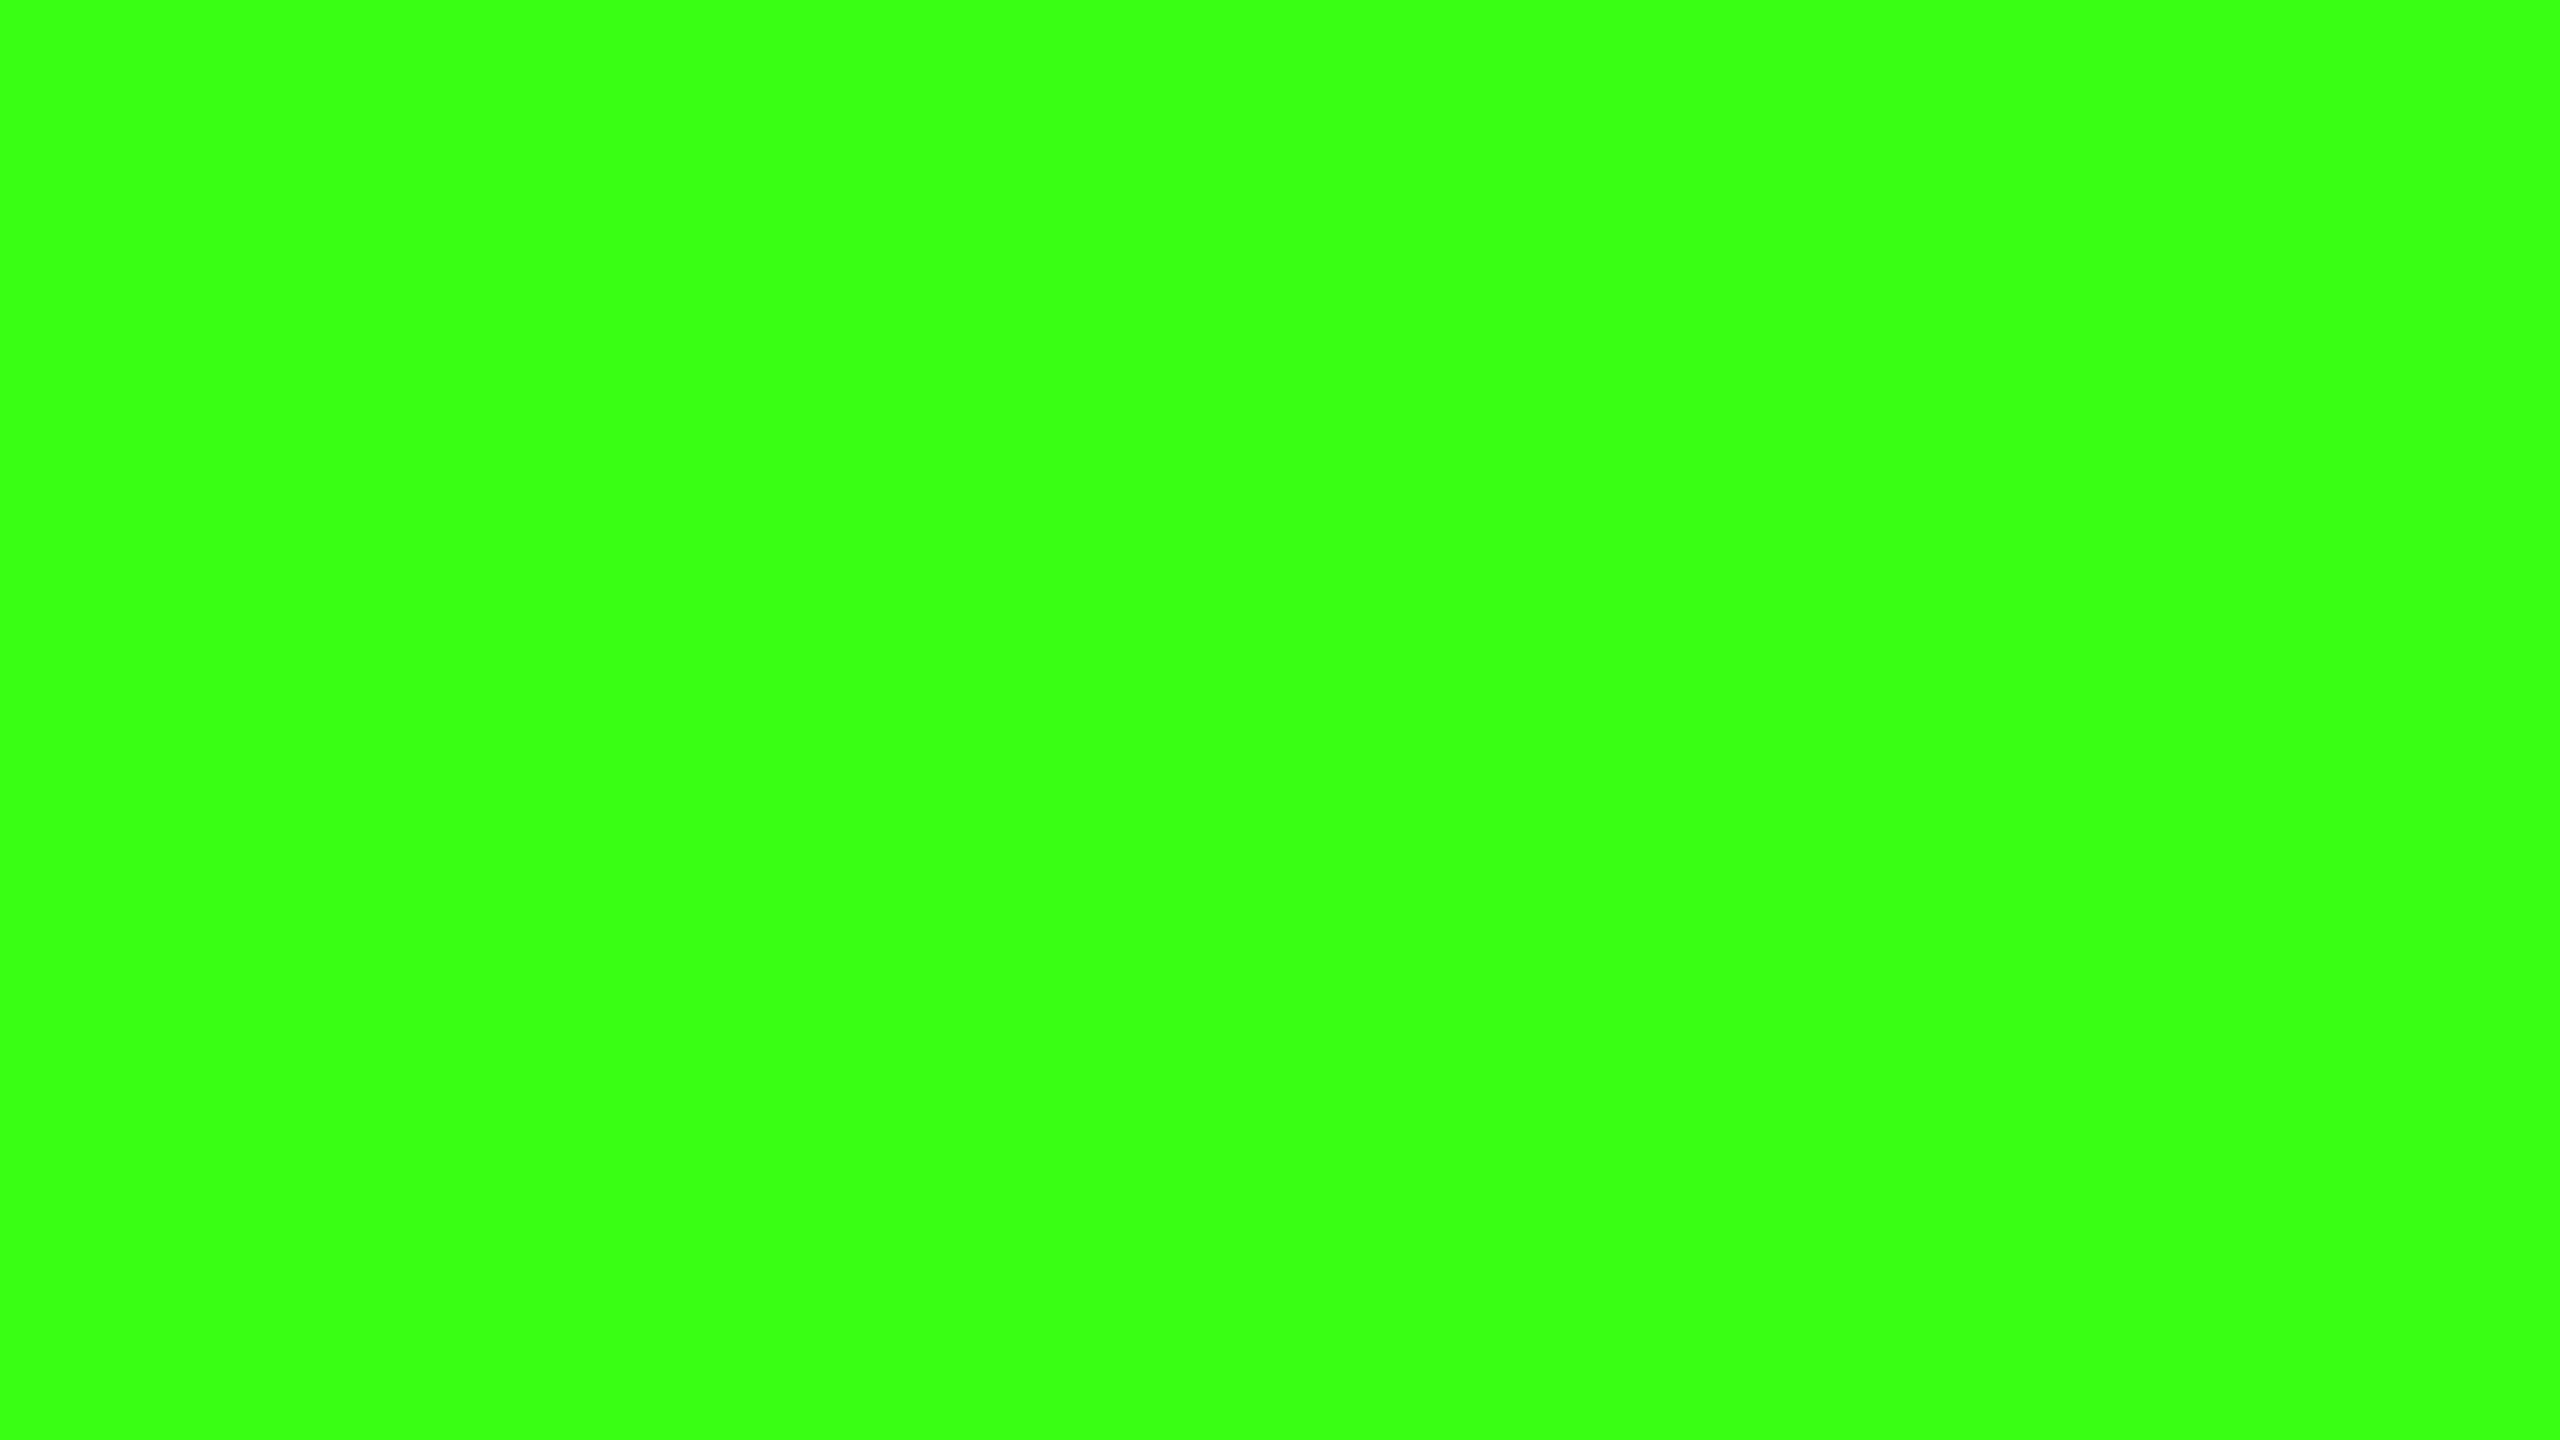 2560x1440  Neon Green Solid Color Background